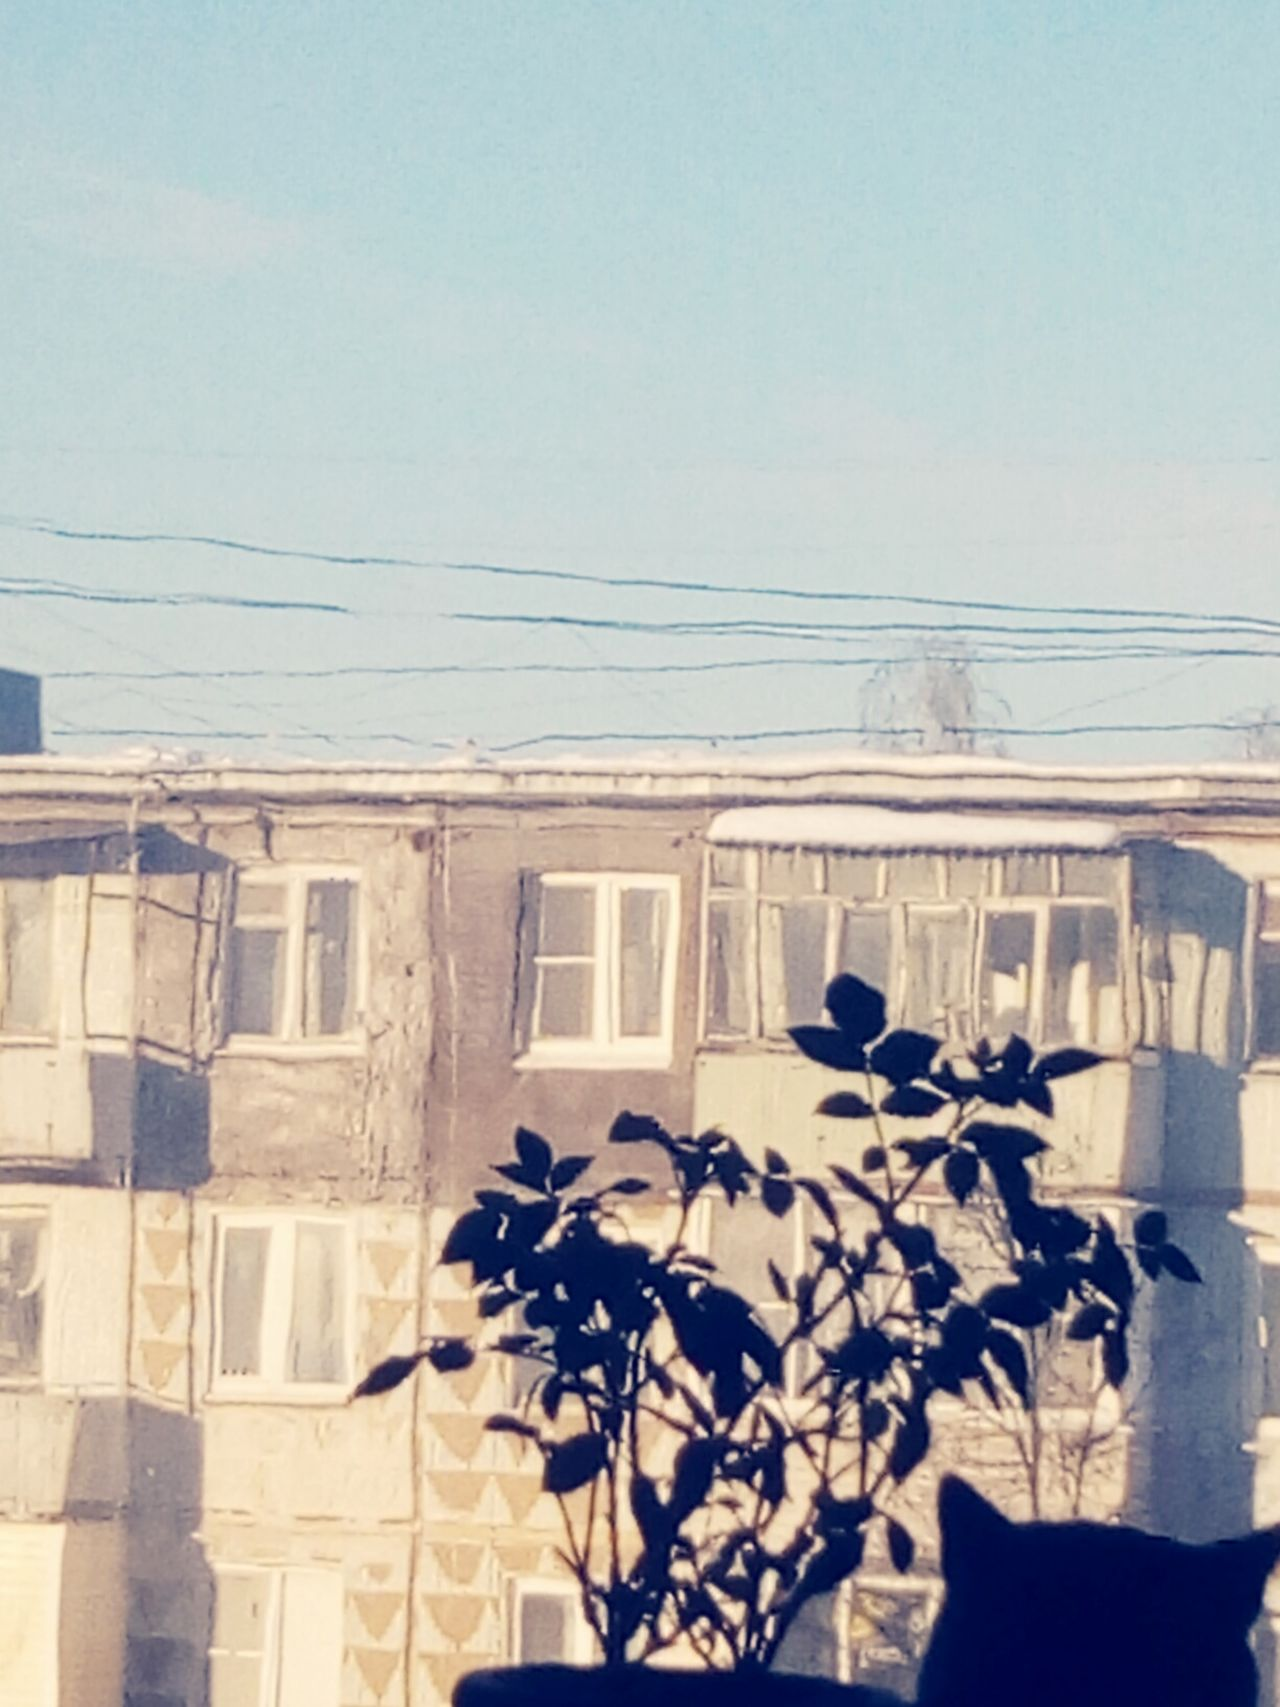 Clear Sky Sunlight Window Architecture No People Sky Building Exterior Day Outdoors EyeEm Black And White Photography Cats Of EyeEm Silhouette Indoors  Cat Ivy Eye4photography  Nature Residential Building City Built Structure Eye4photography